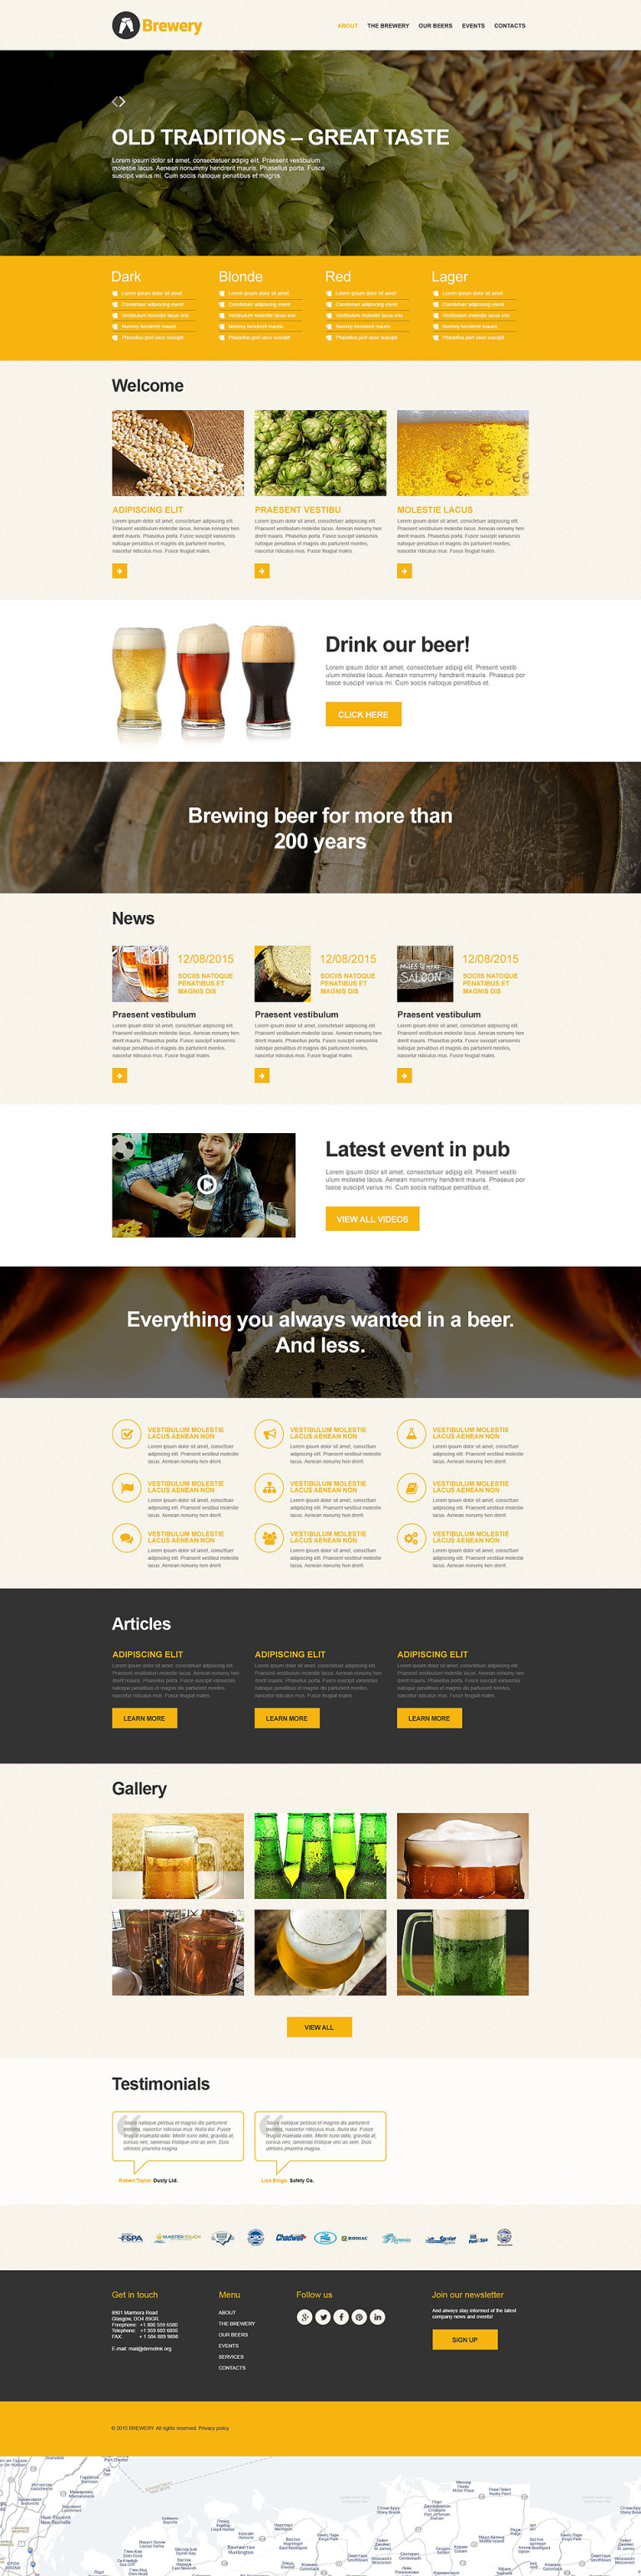 Brewery Muse Template New Screenshots BIG